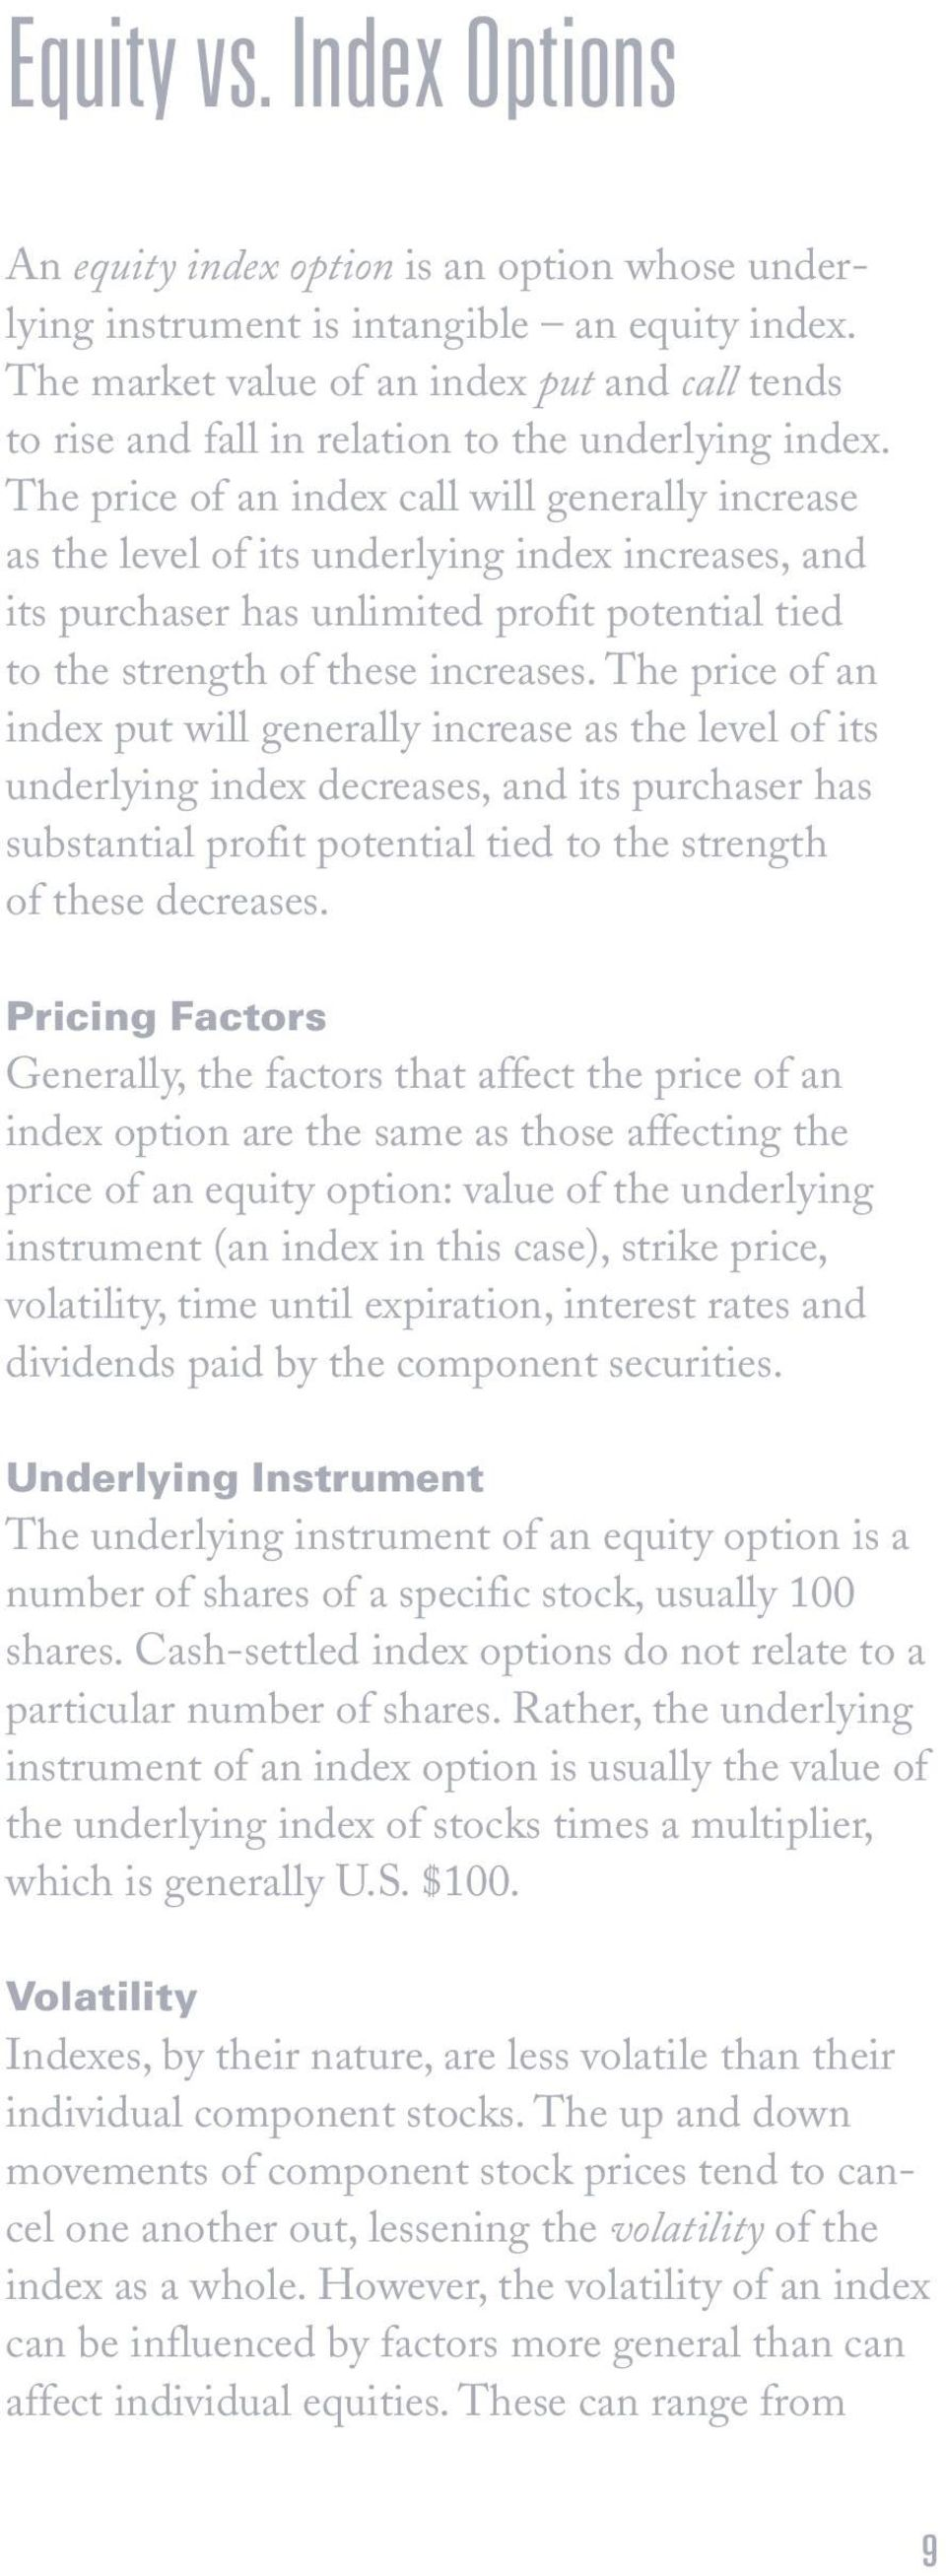 The price of an index call will generally increase as the level of its underlying index increases, and its purchaser has unlimited profit potential tied to the strength of these increases.